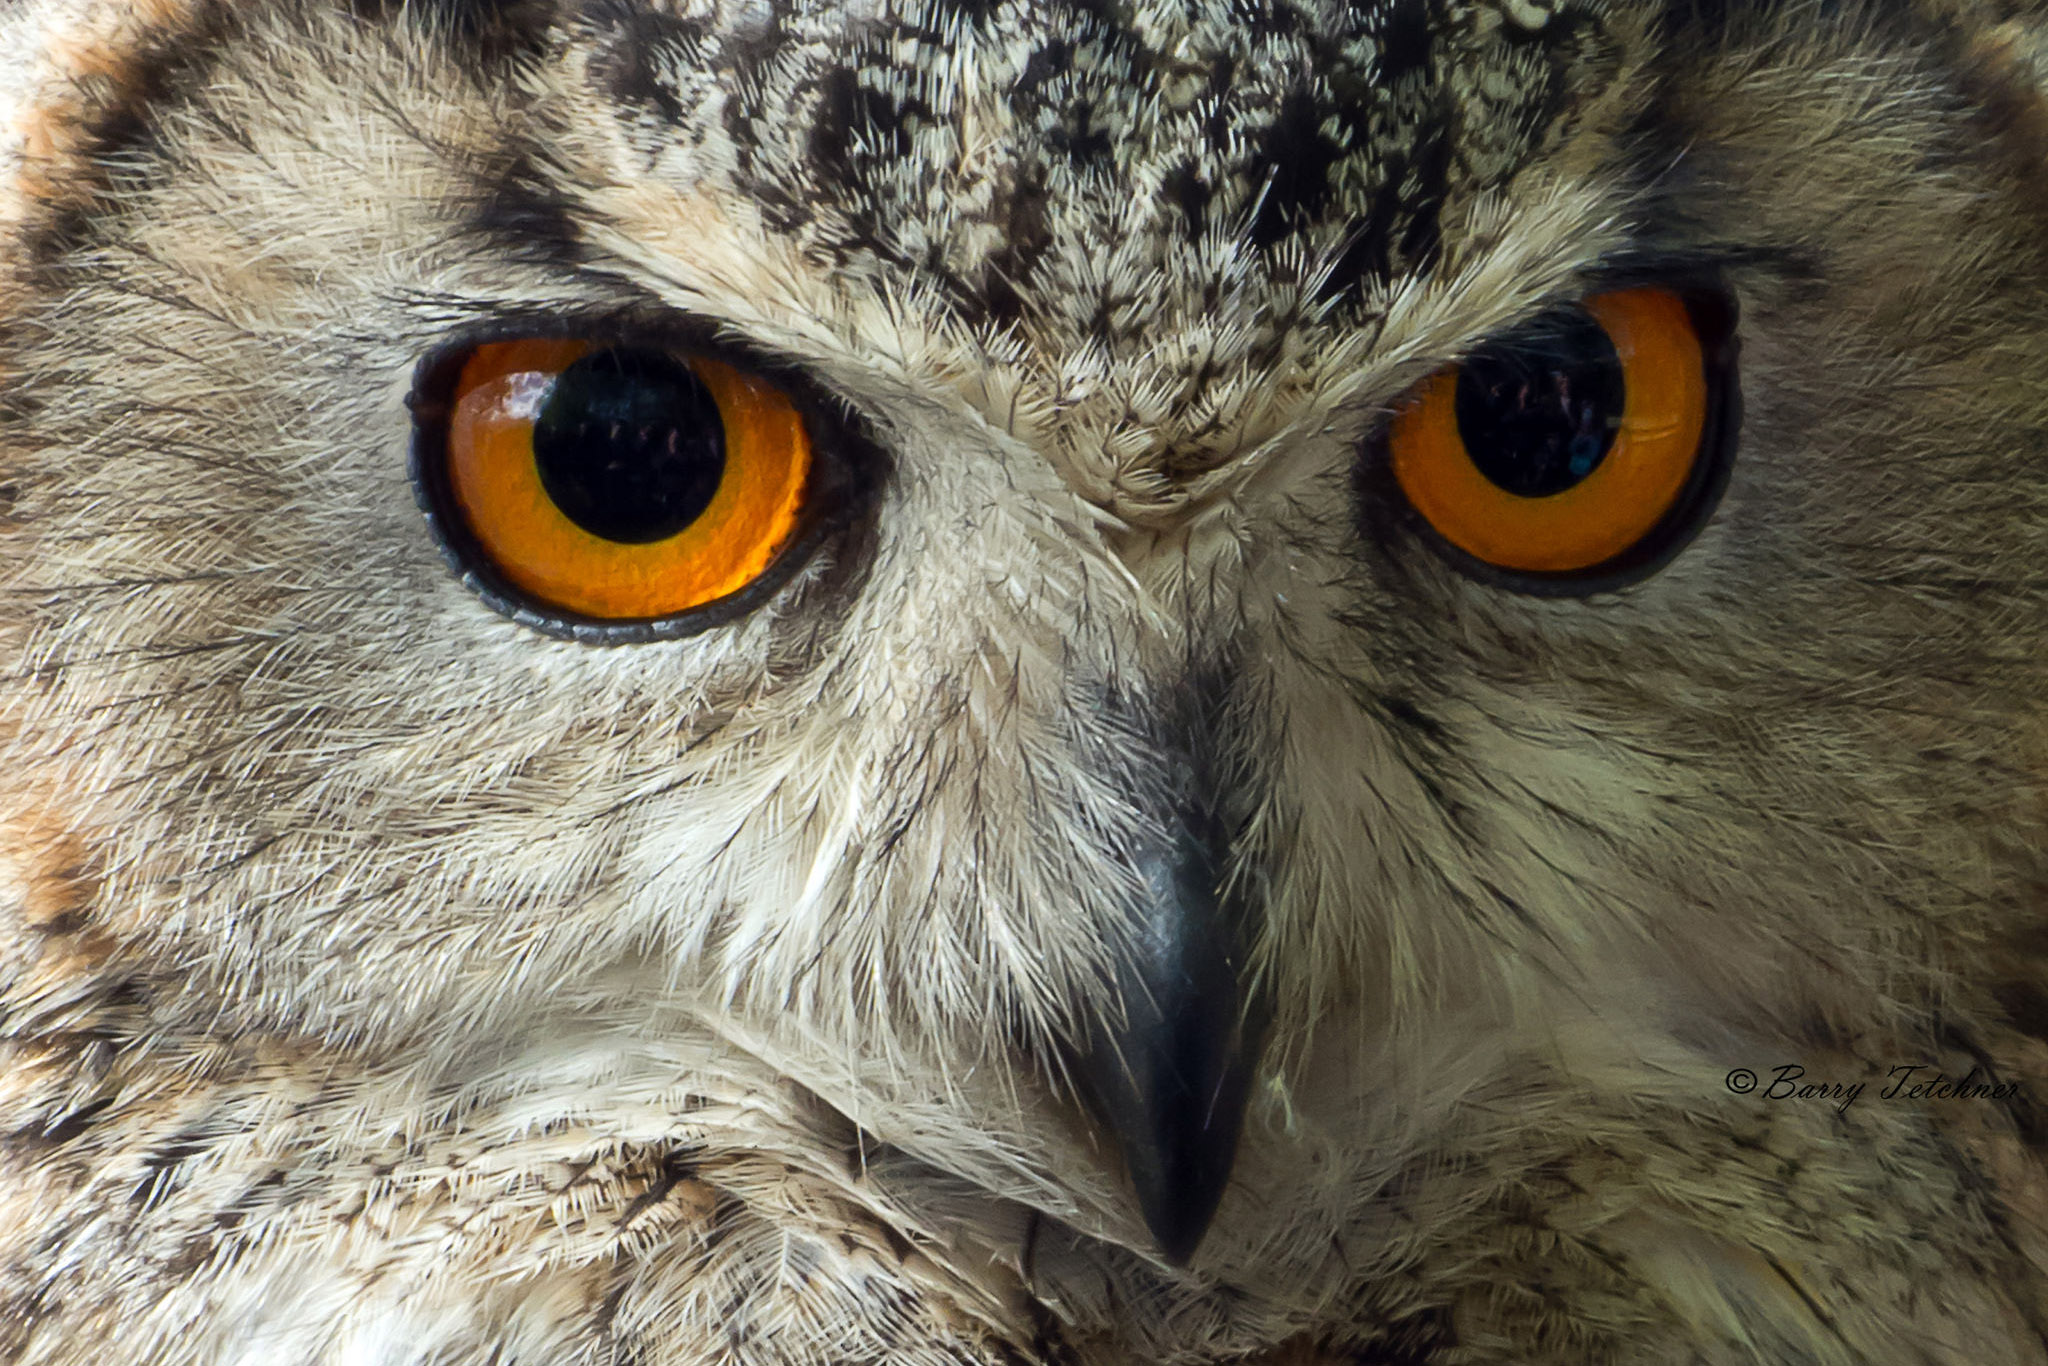 A close up on an eagle owl's face.